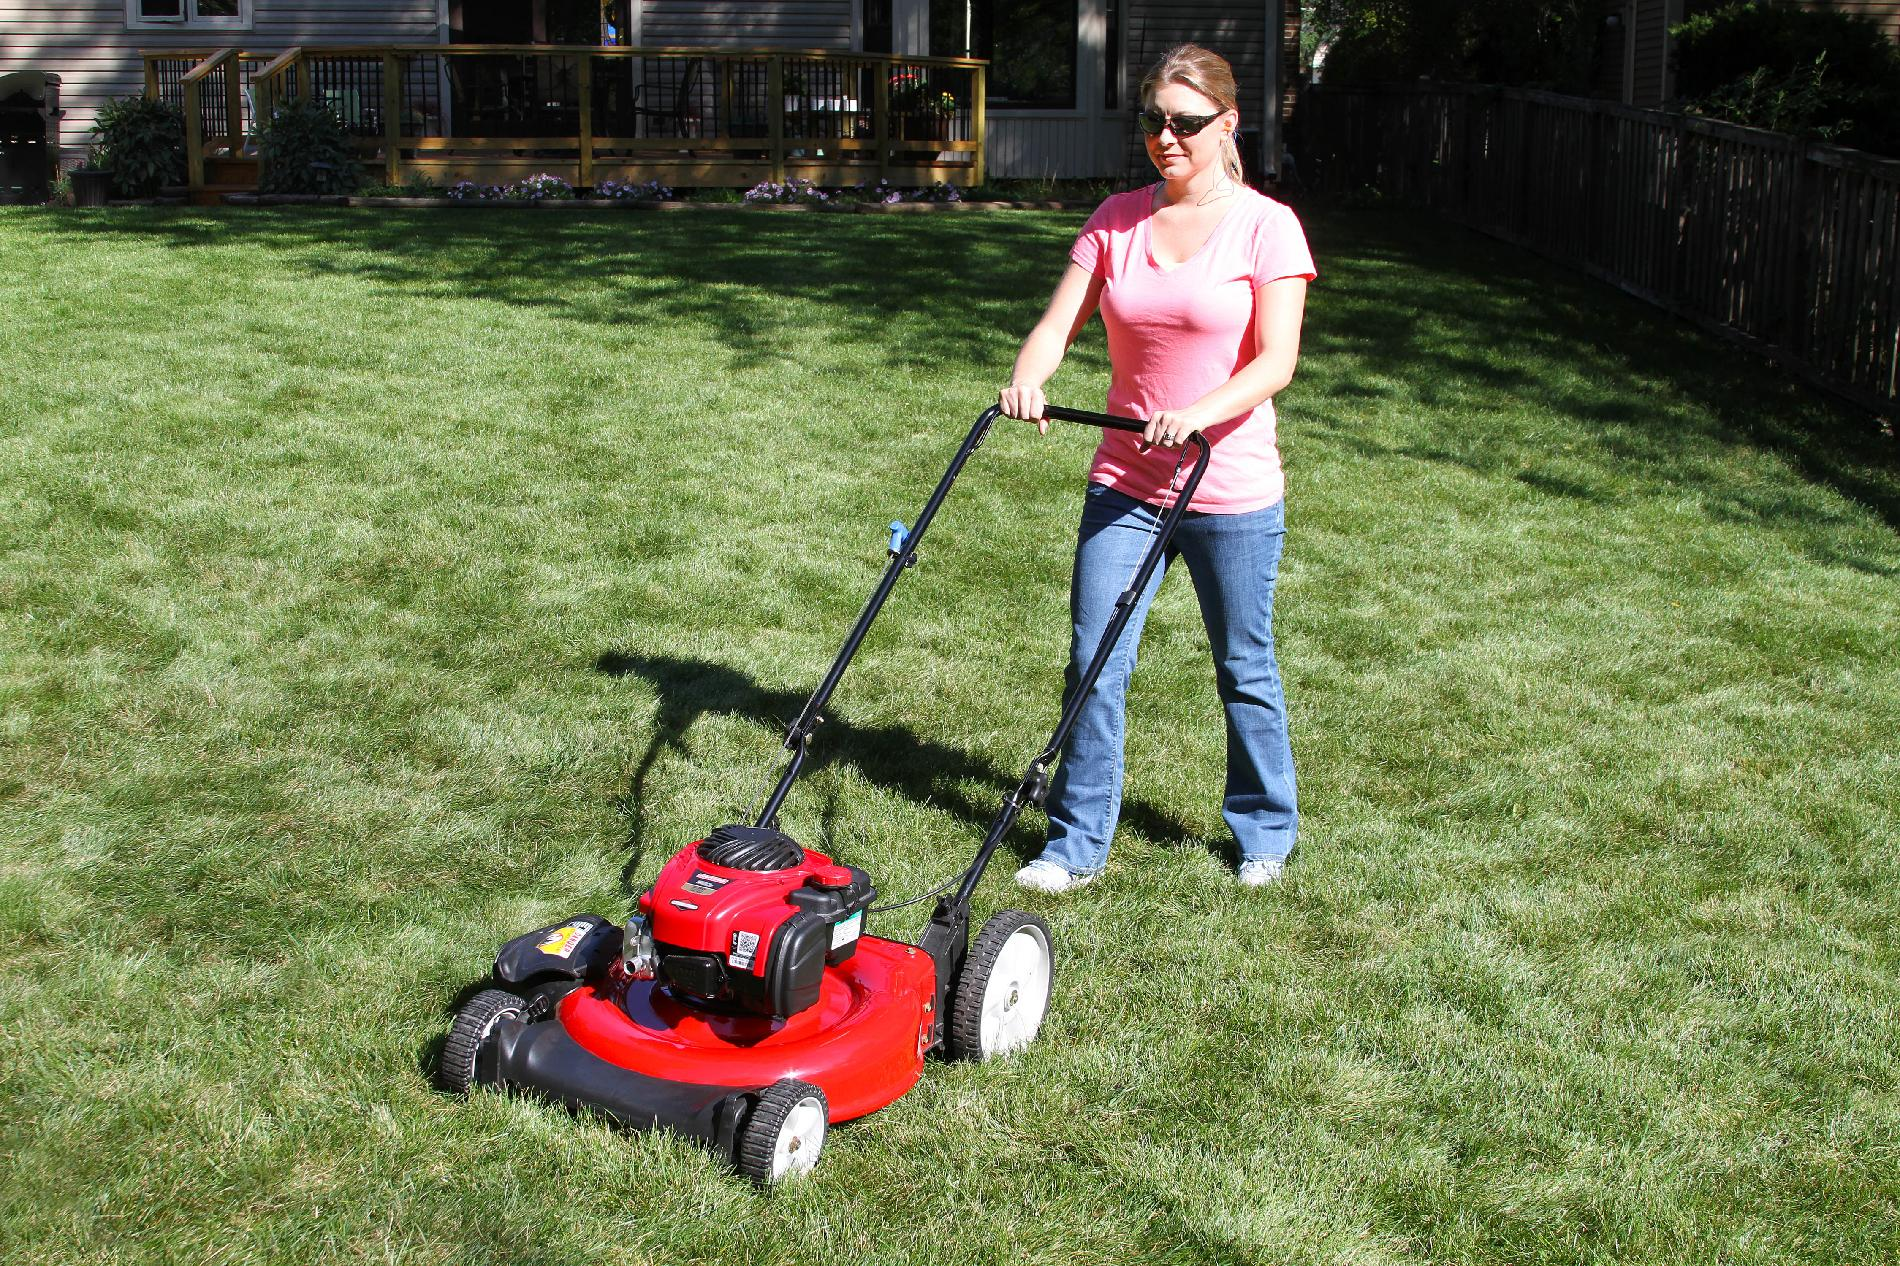 Craftsman 140cc* Briggs & Stratton Engine, High Wheel Side Discharge Push Mower